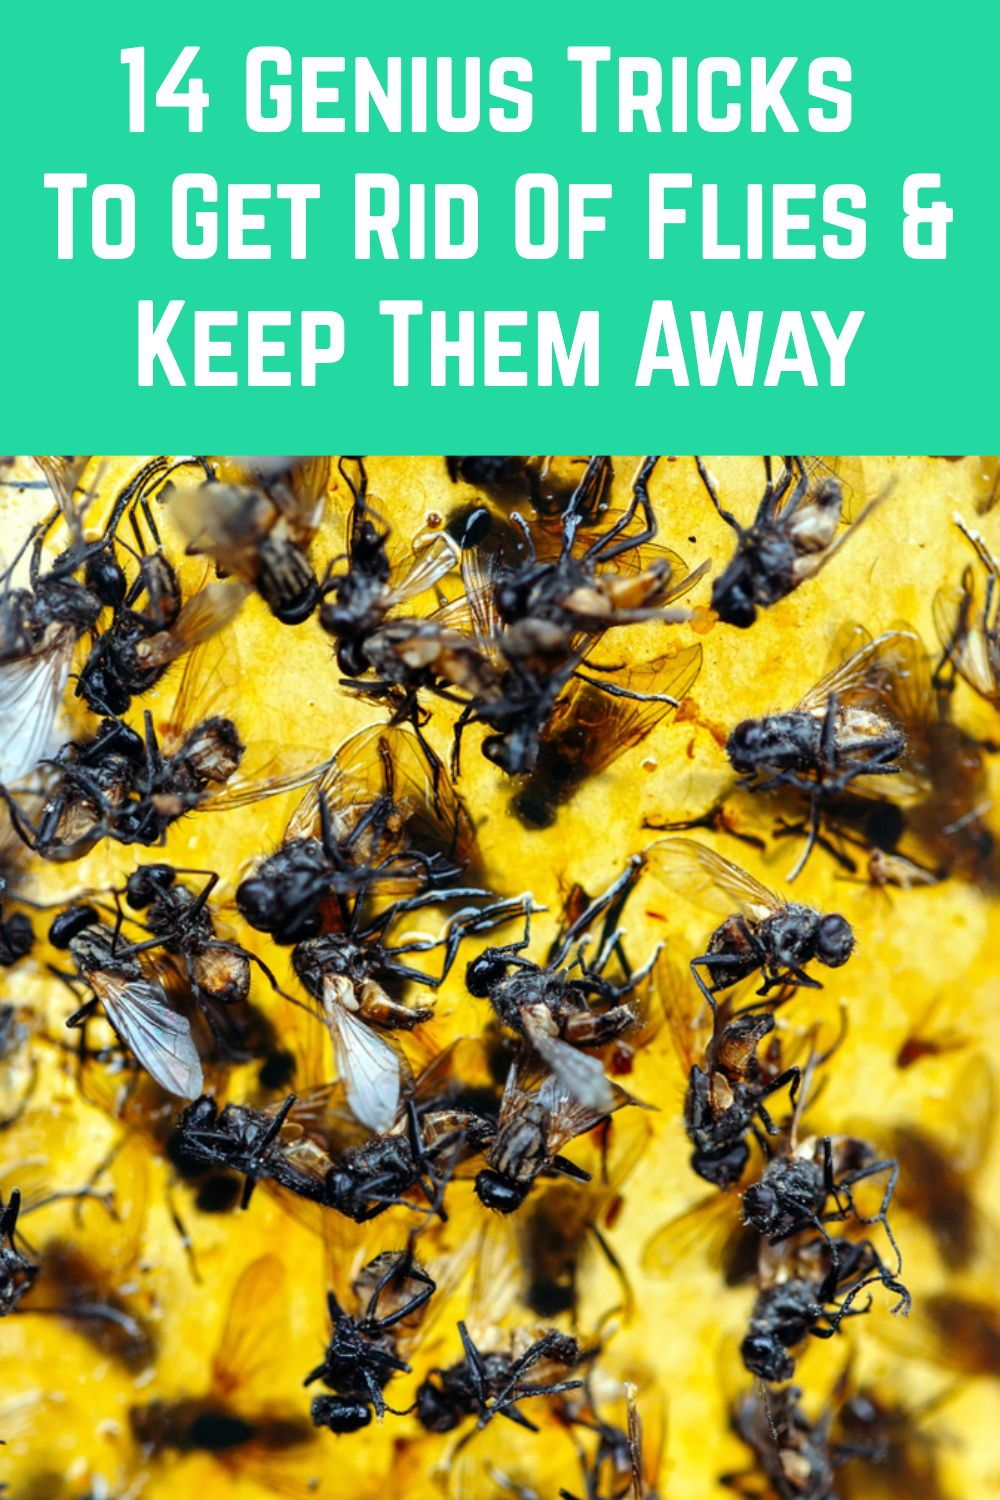 How To Get Rid Of Flies Outside In The Yard